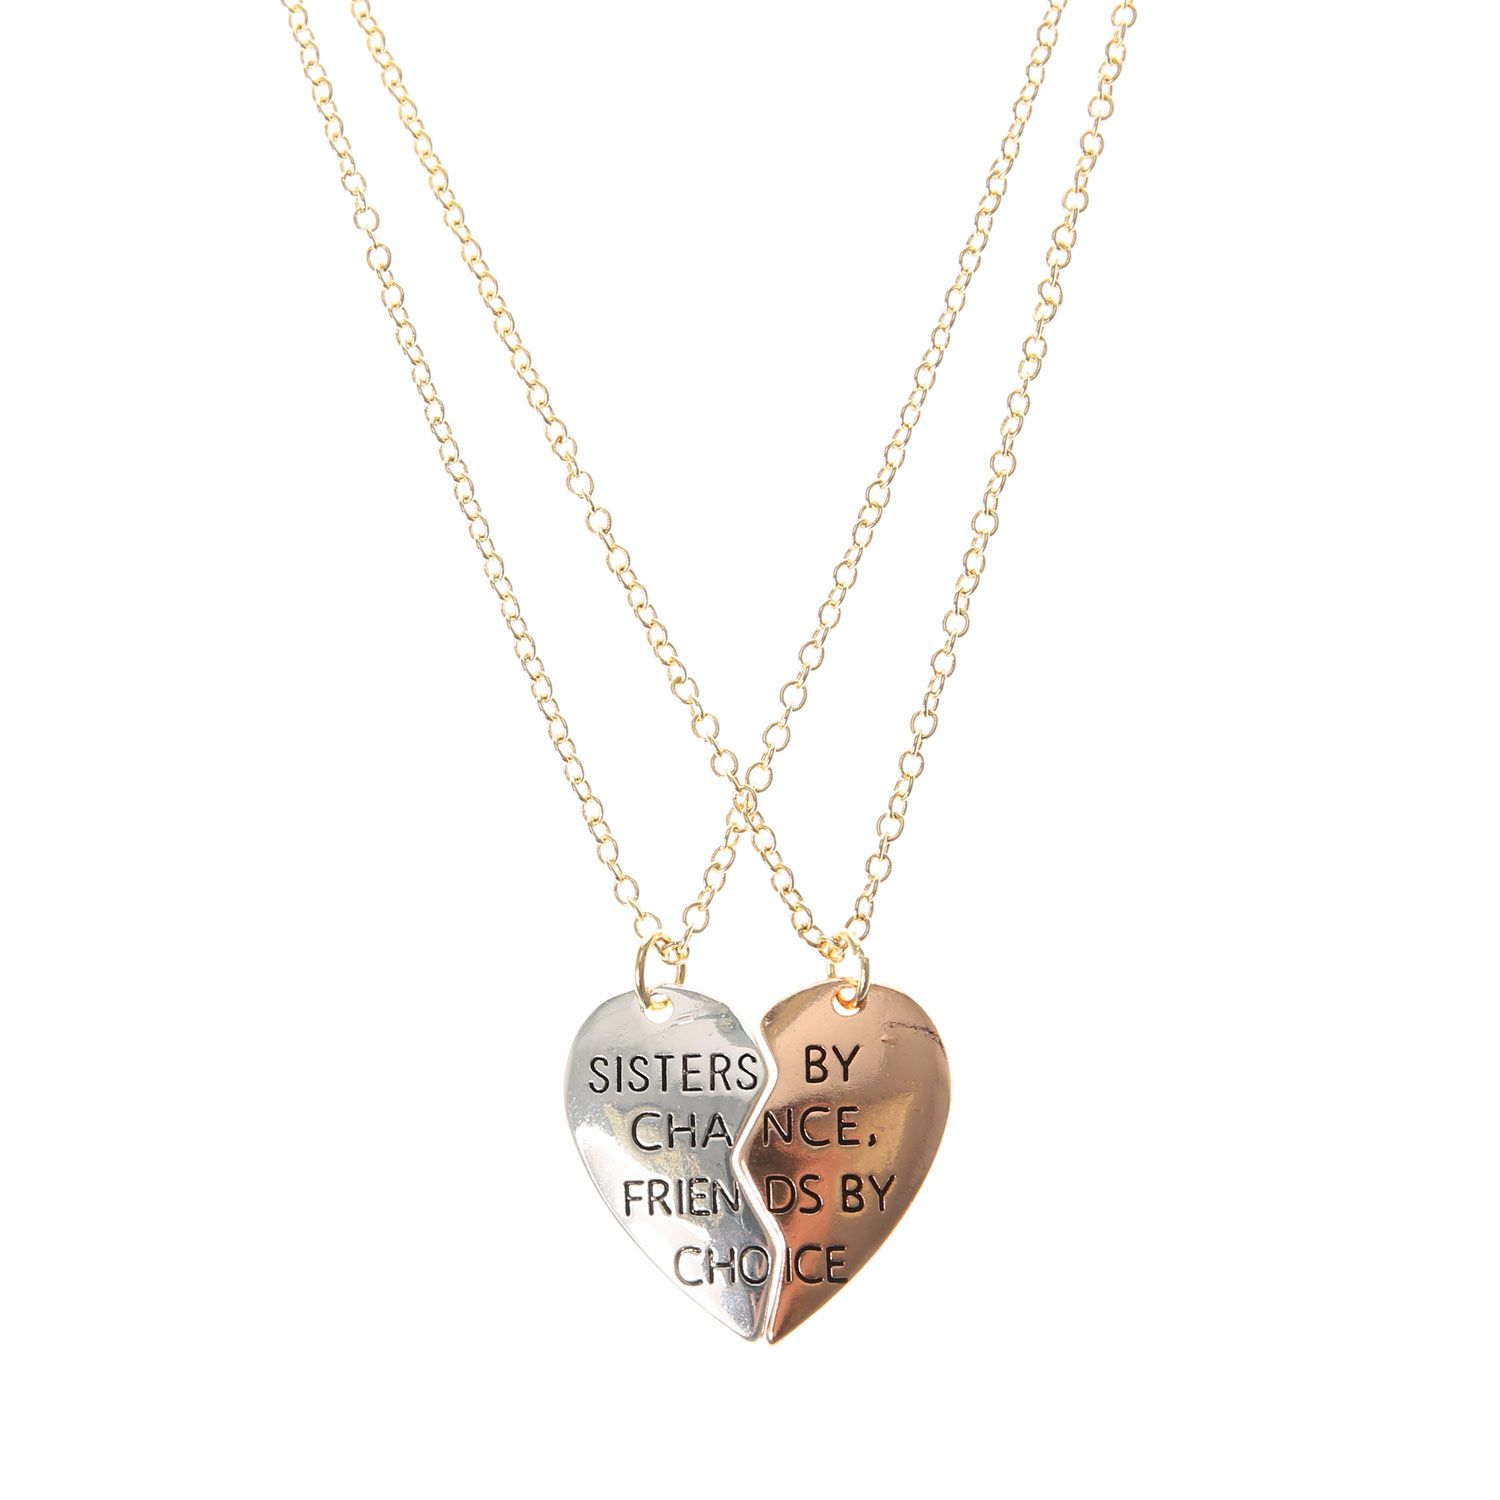 Sisters By Chance Friends By Choice Necklace Necklaces all